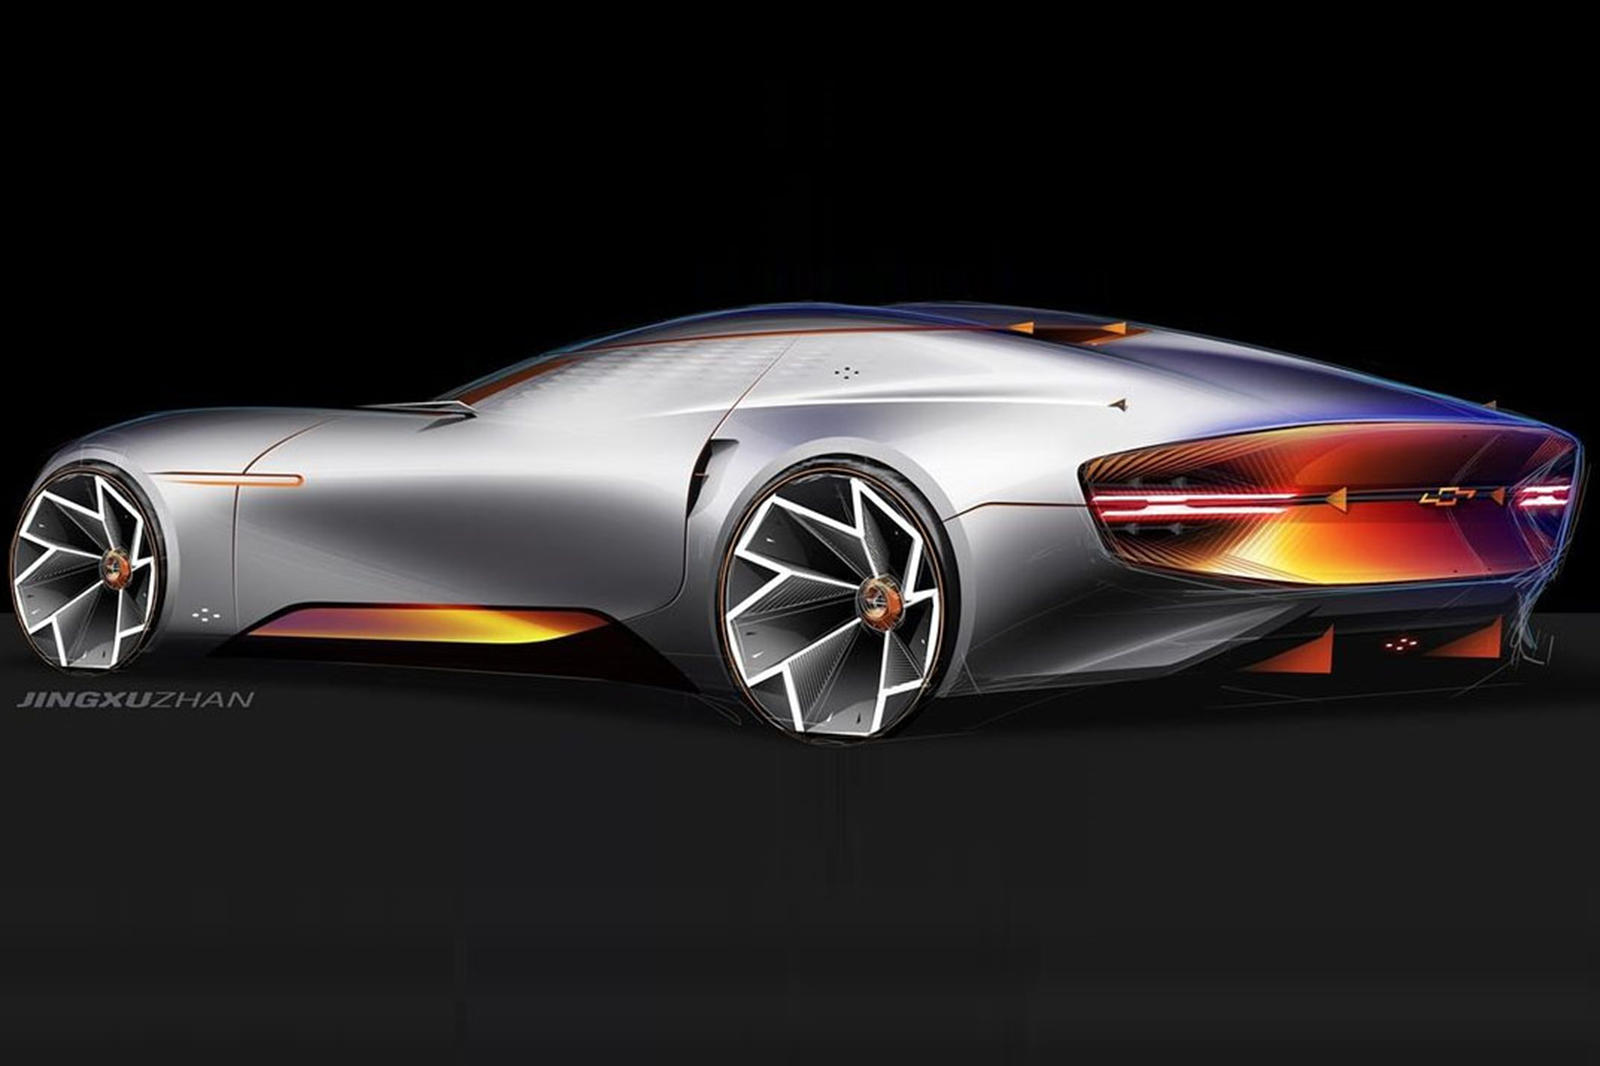 GM Design Reveals Sports Cars Of The Future